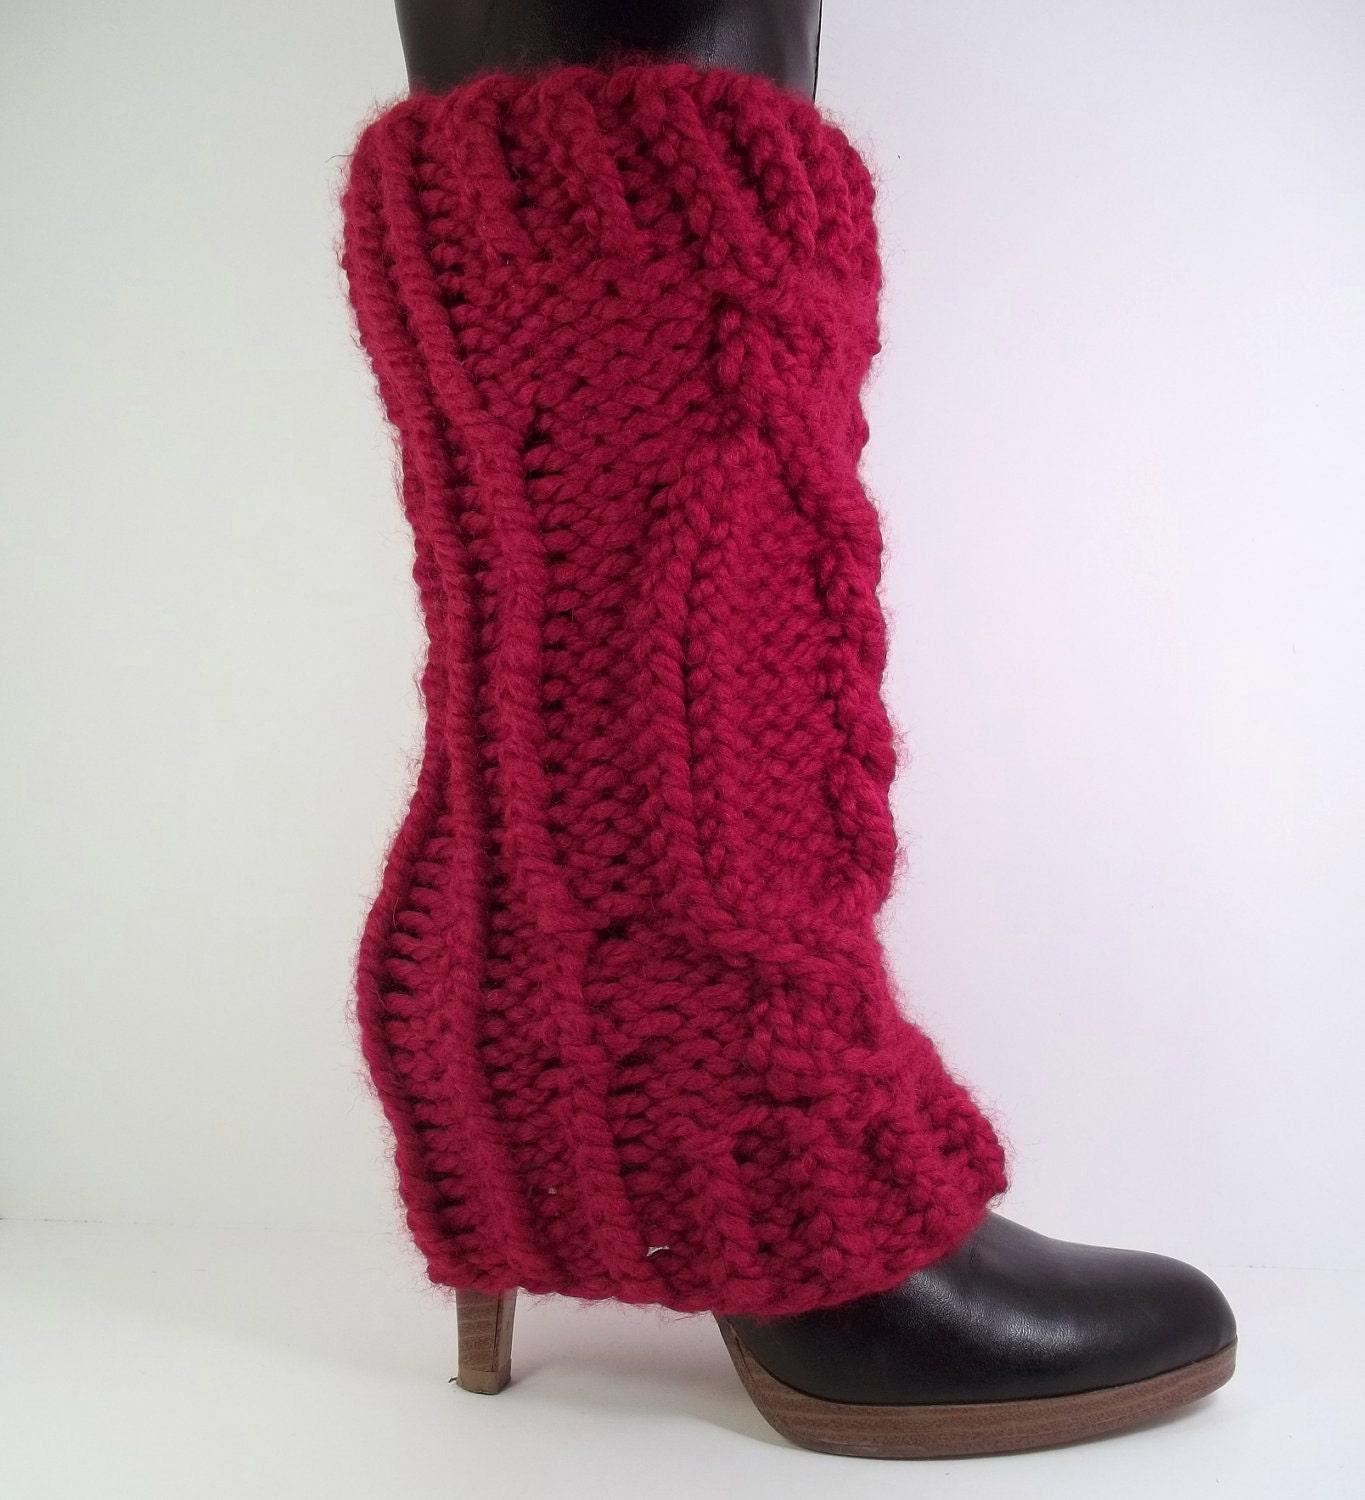 Ribbed Leg Warmers | FaveCrafts.com - Christmas Crafts, Free